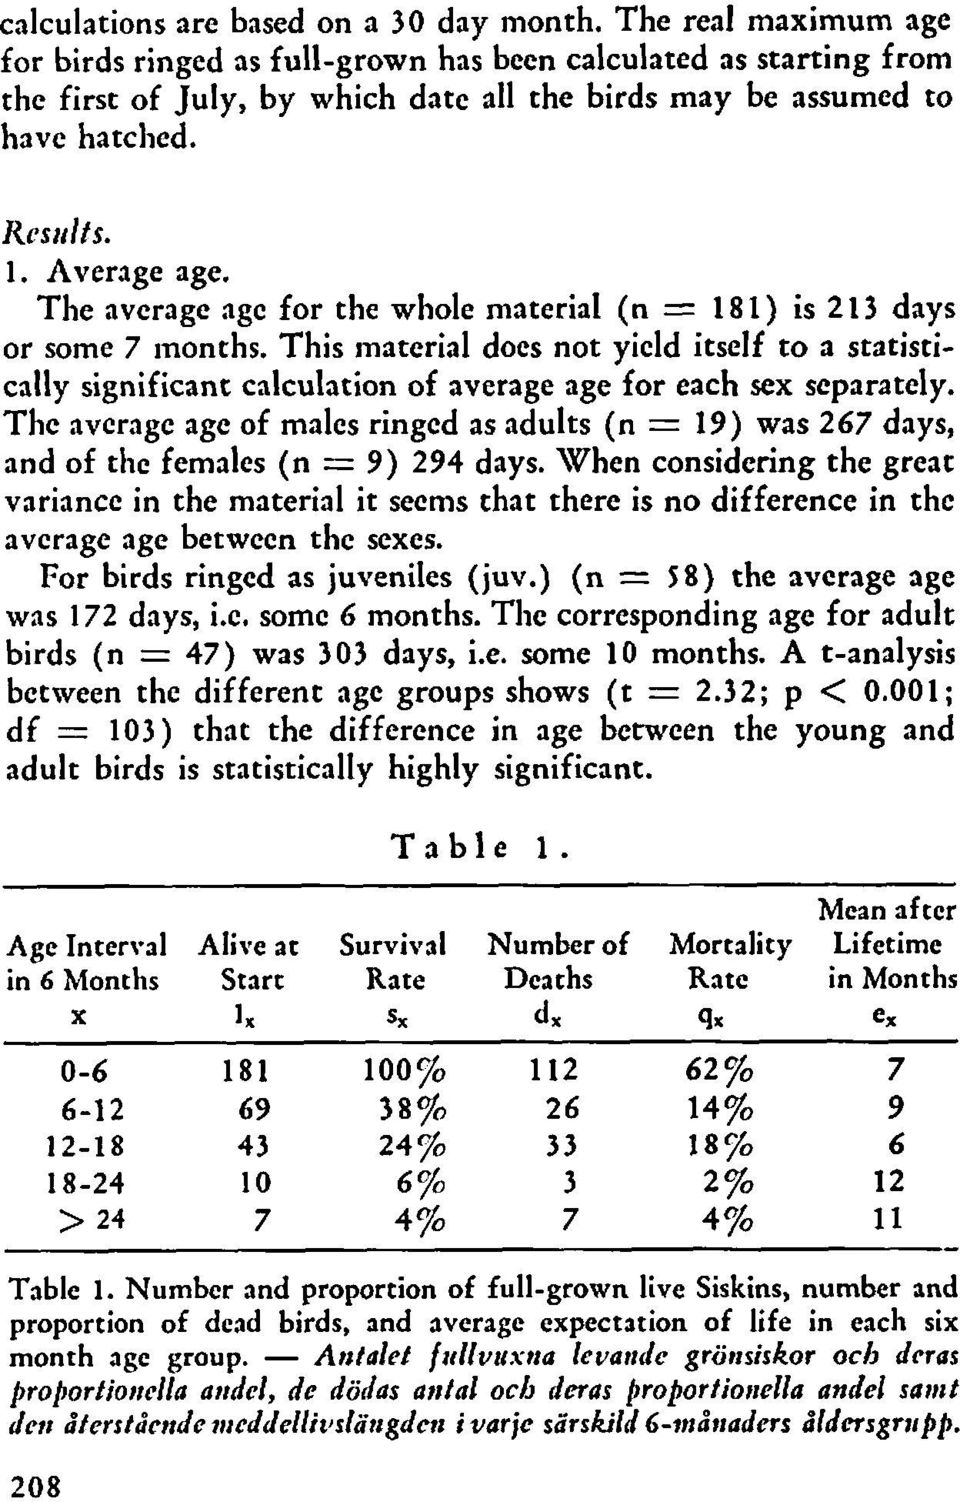 The avcragc age for the whole material (n = 181) is 213 days or some 7 rnonths. This material docs not yicld itself to a statisticdly significant calculation of average age for each sex scparately.